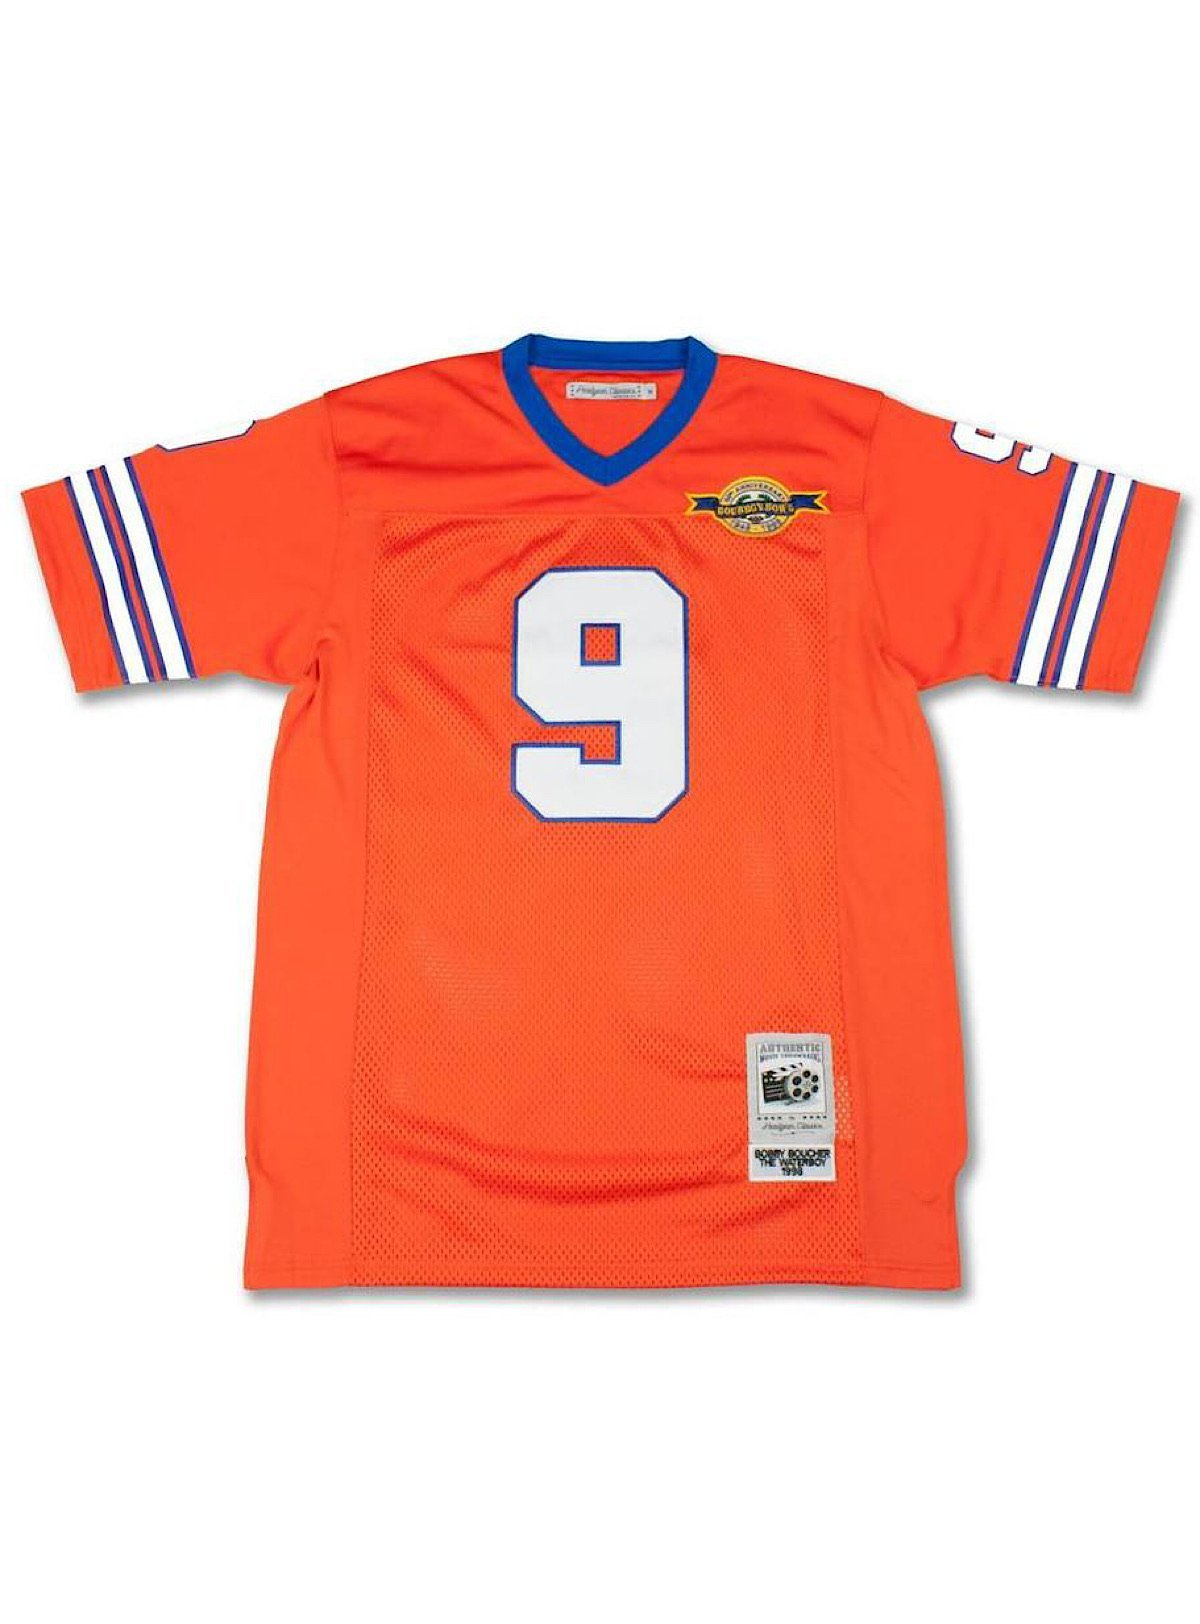 Politics Jersey - The Waterboy Boucher - Orange